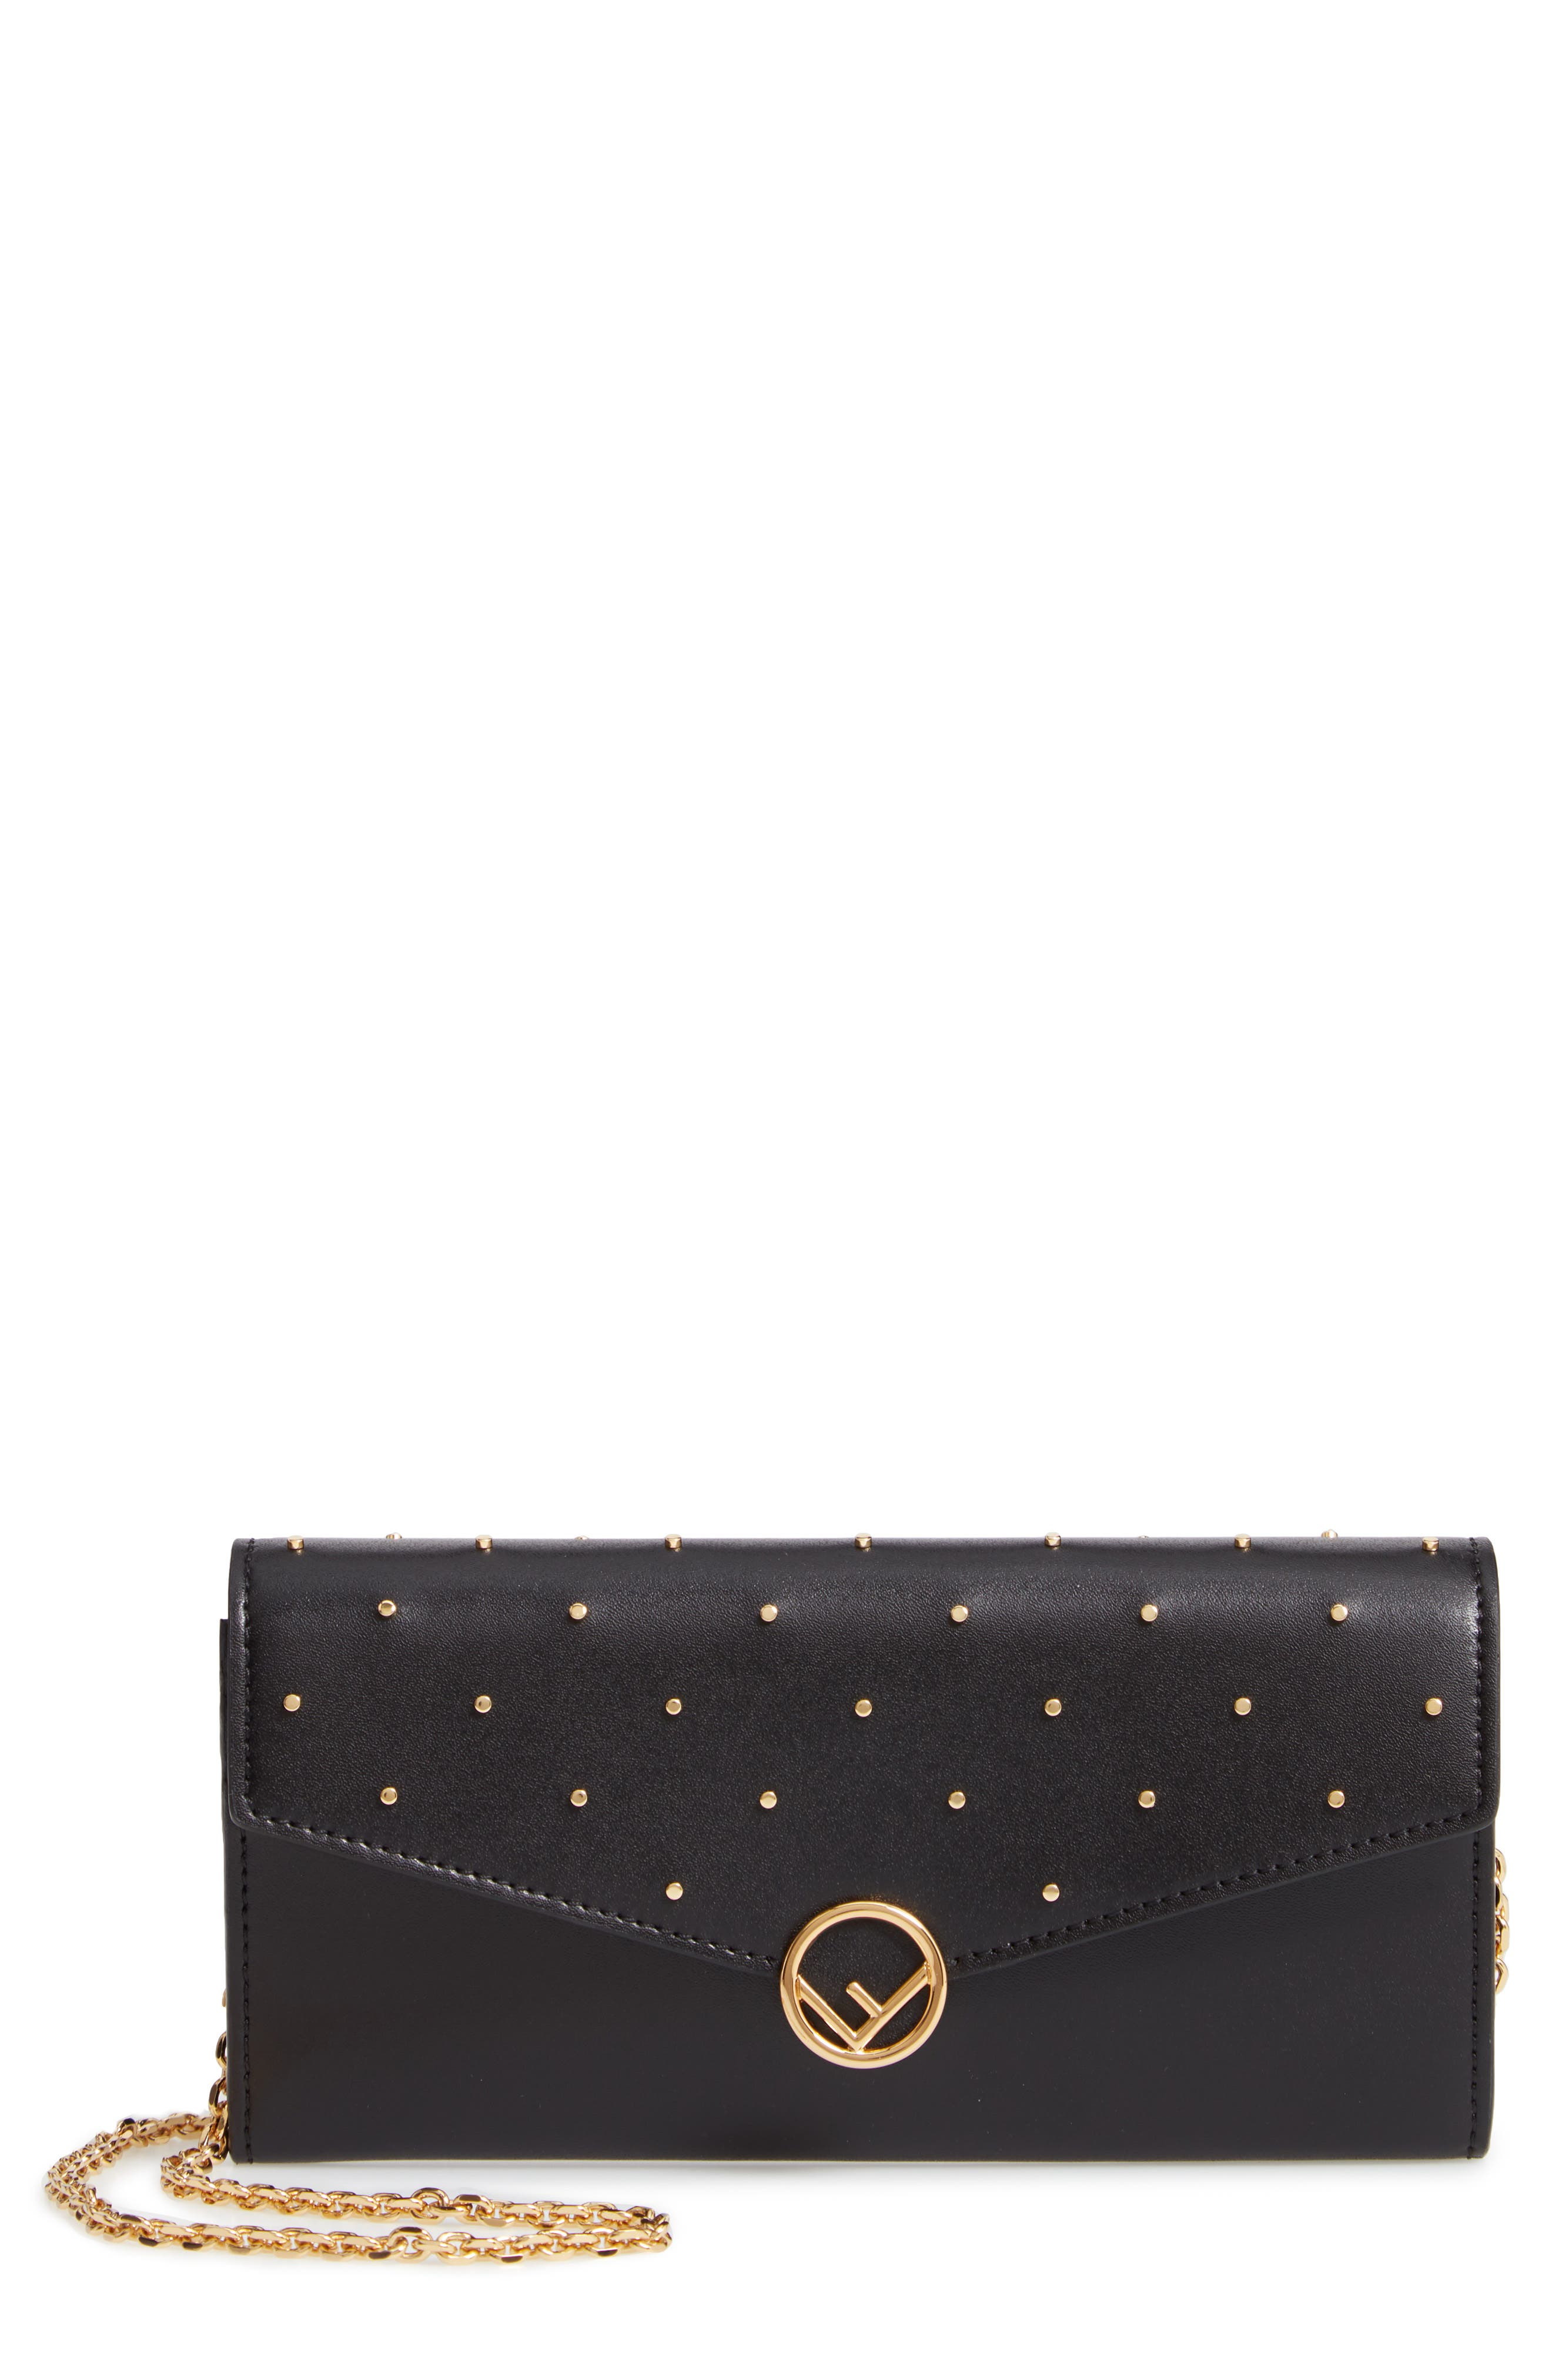 Studded Calfskin Leather Continental Wallet on a Chain,                         Main,                         color, NERO/ ORO SOFT